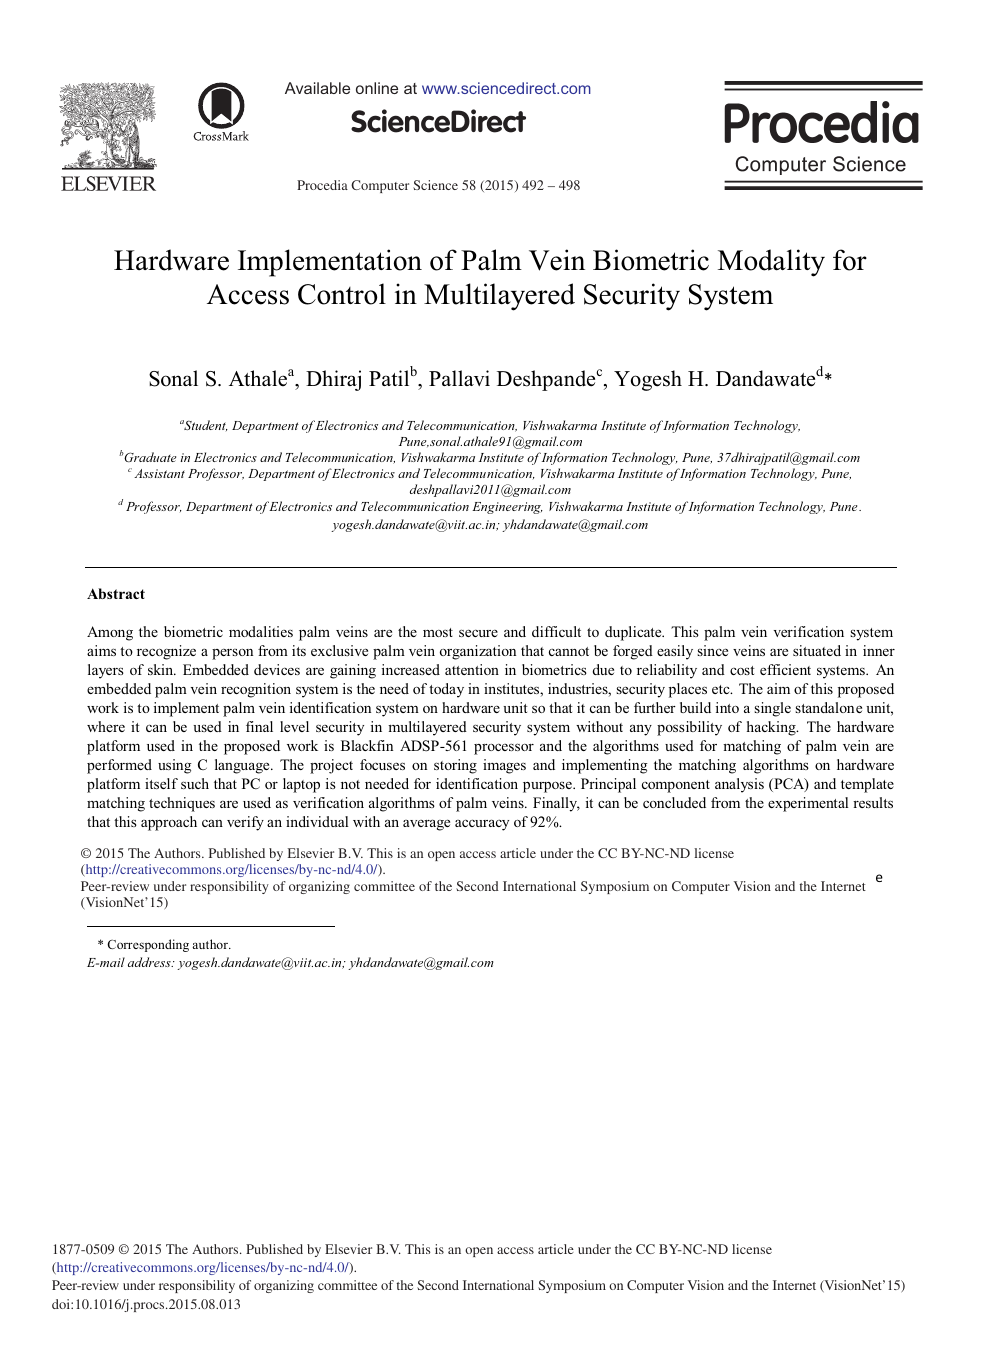 Hardware Implementation of Palm Vein Biometric Modality for